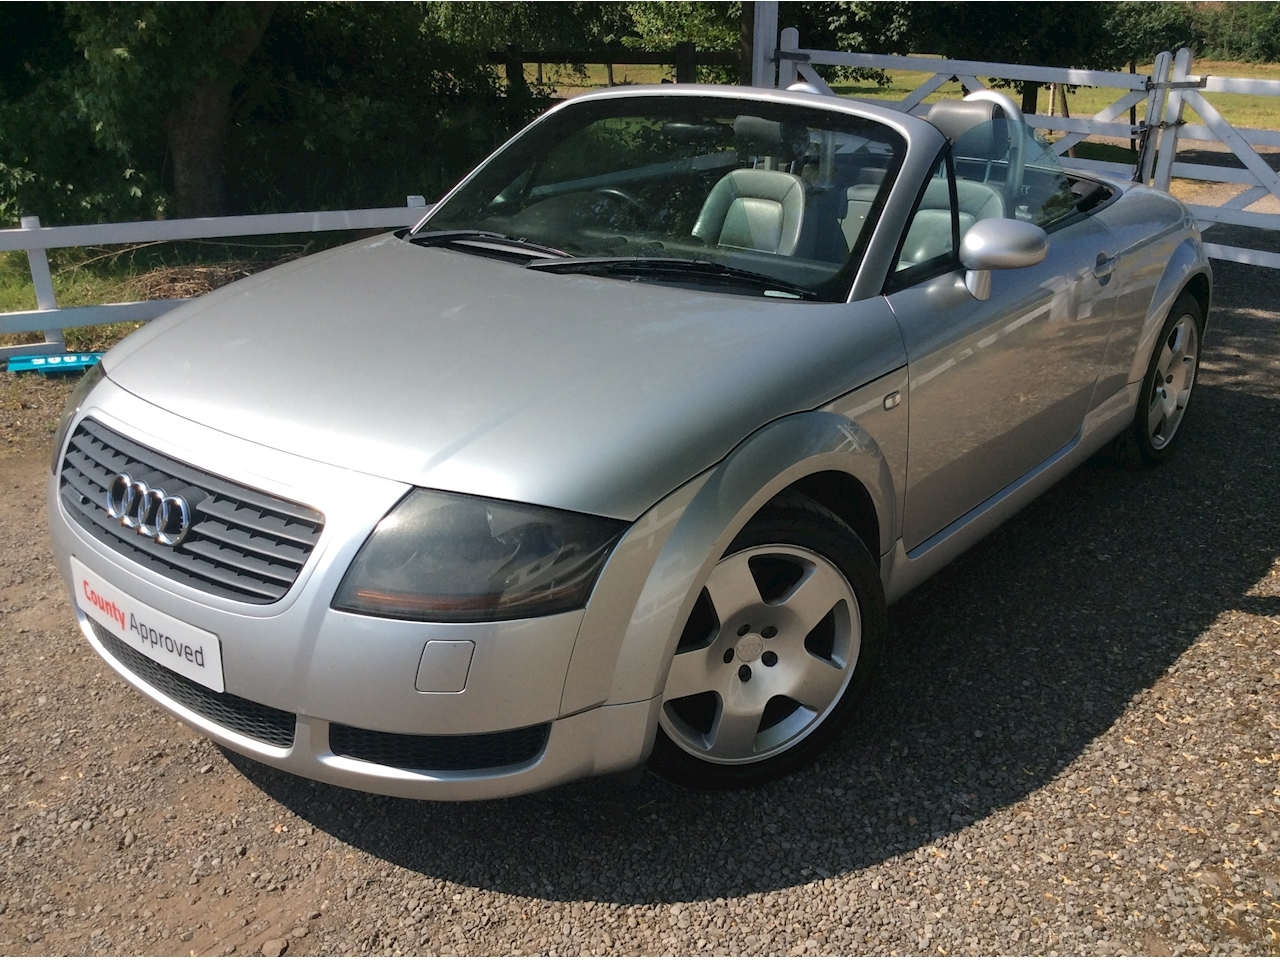 TT Roadster Quattro (225Bhp) 1.8 2dr Convertible Manual Petrol